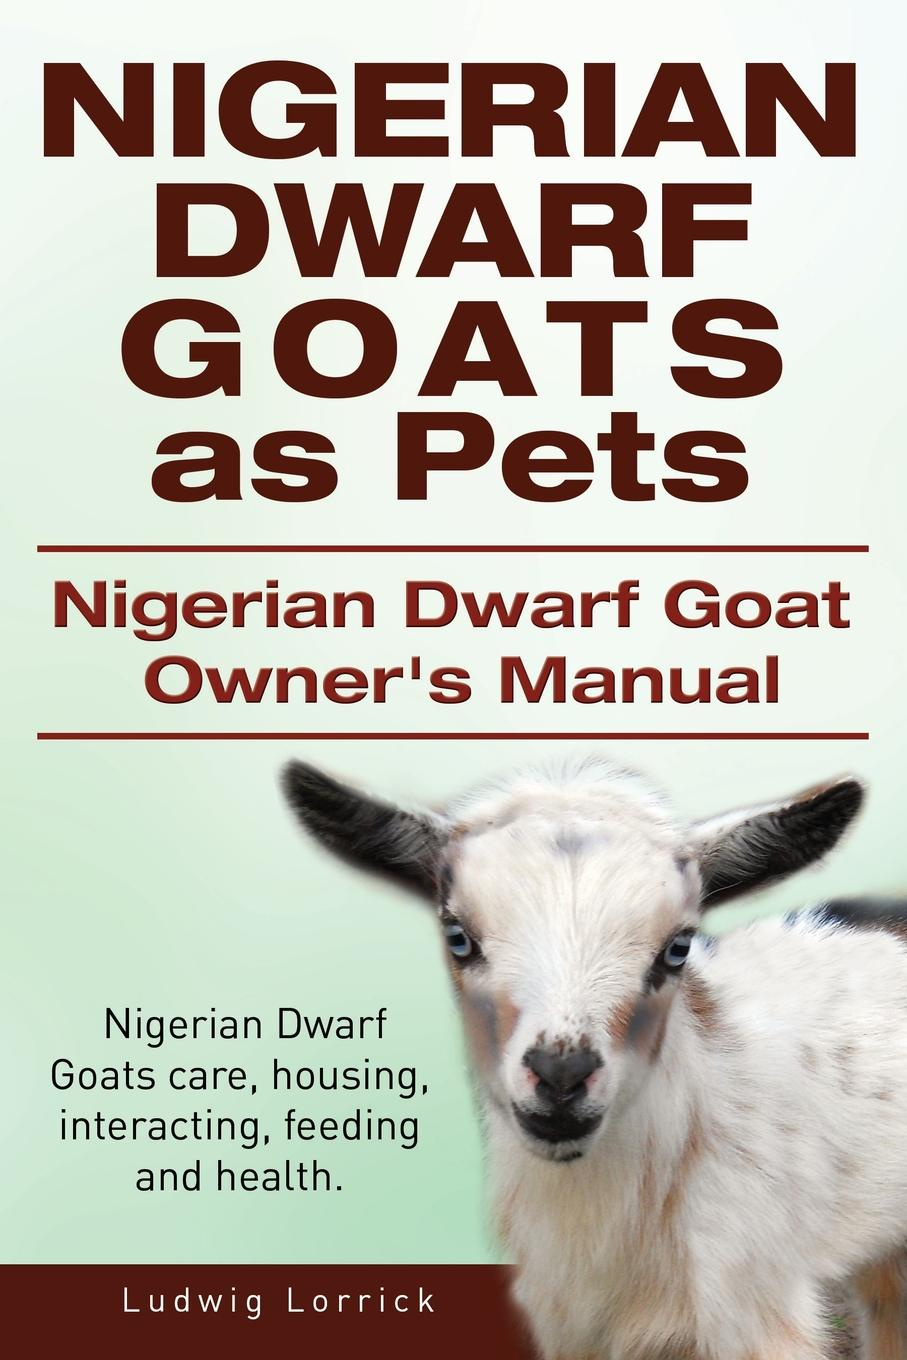 Ludwig Lorrick Nigerian Dwarf Goats as Pets. Nigerian Dwarf Goat Owners Manual. Nigerian Dwarf Goats care, housing, interacting, feeding and health. цена 2017